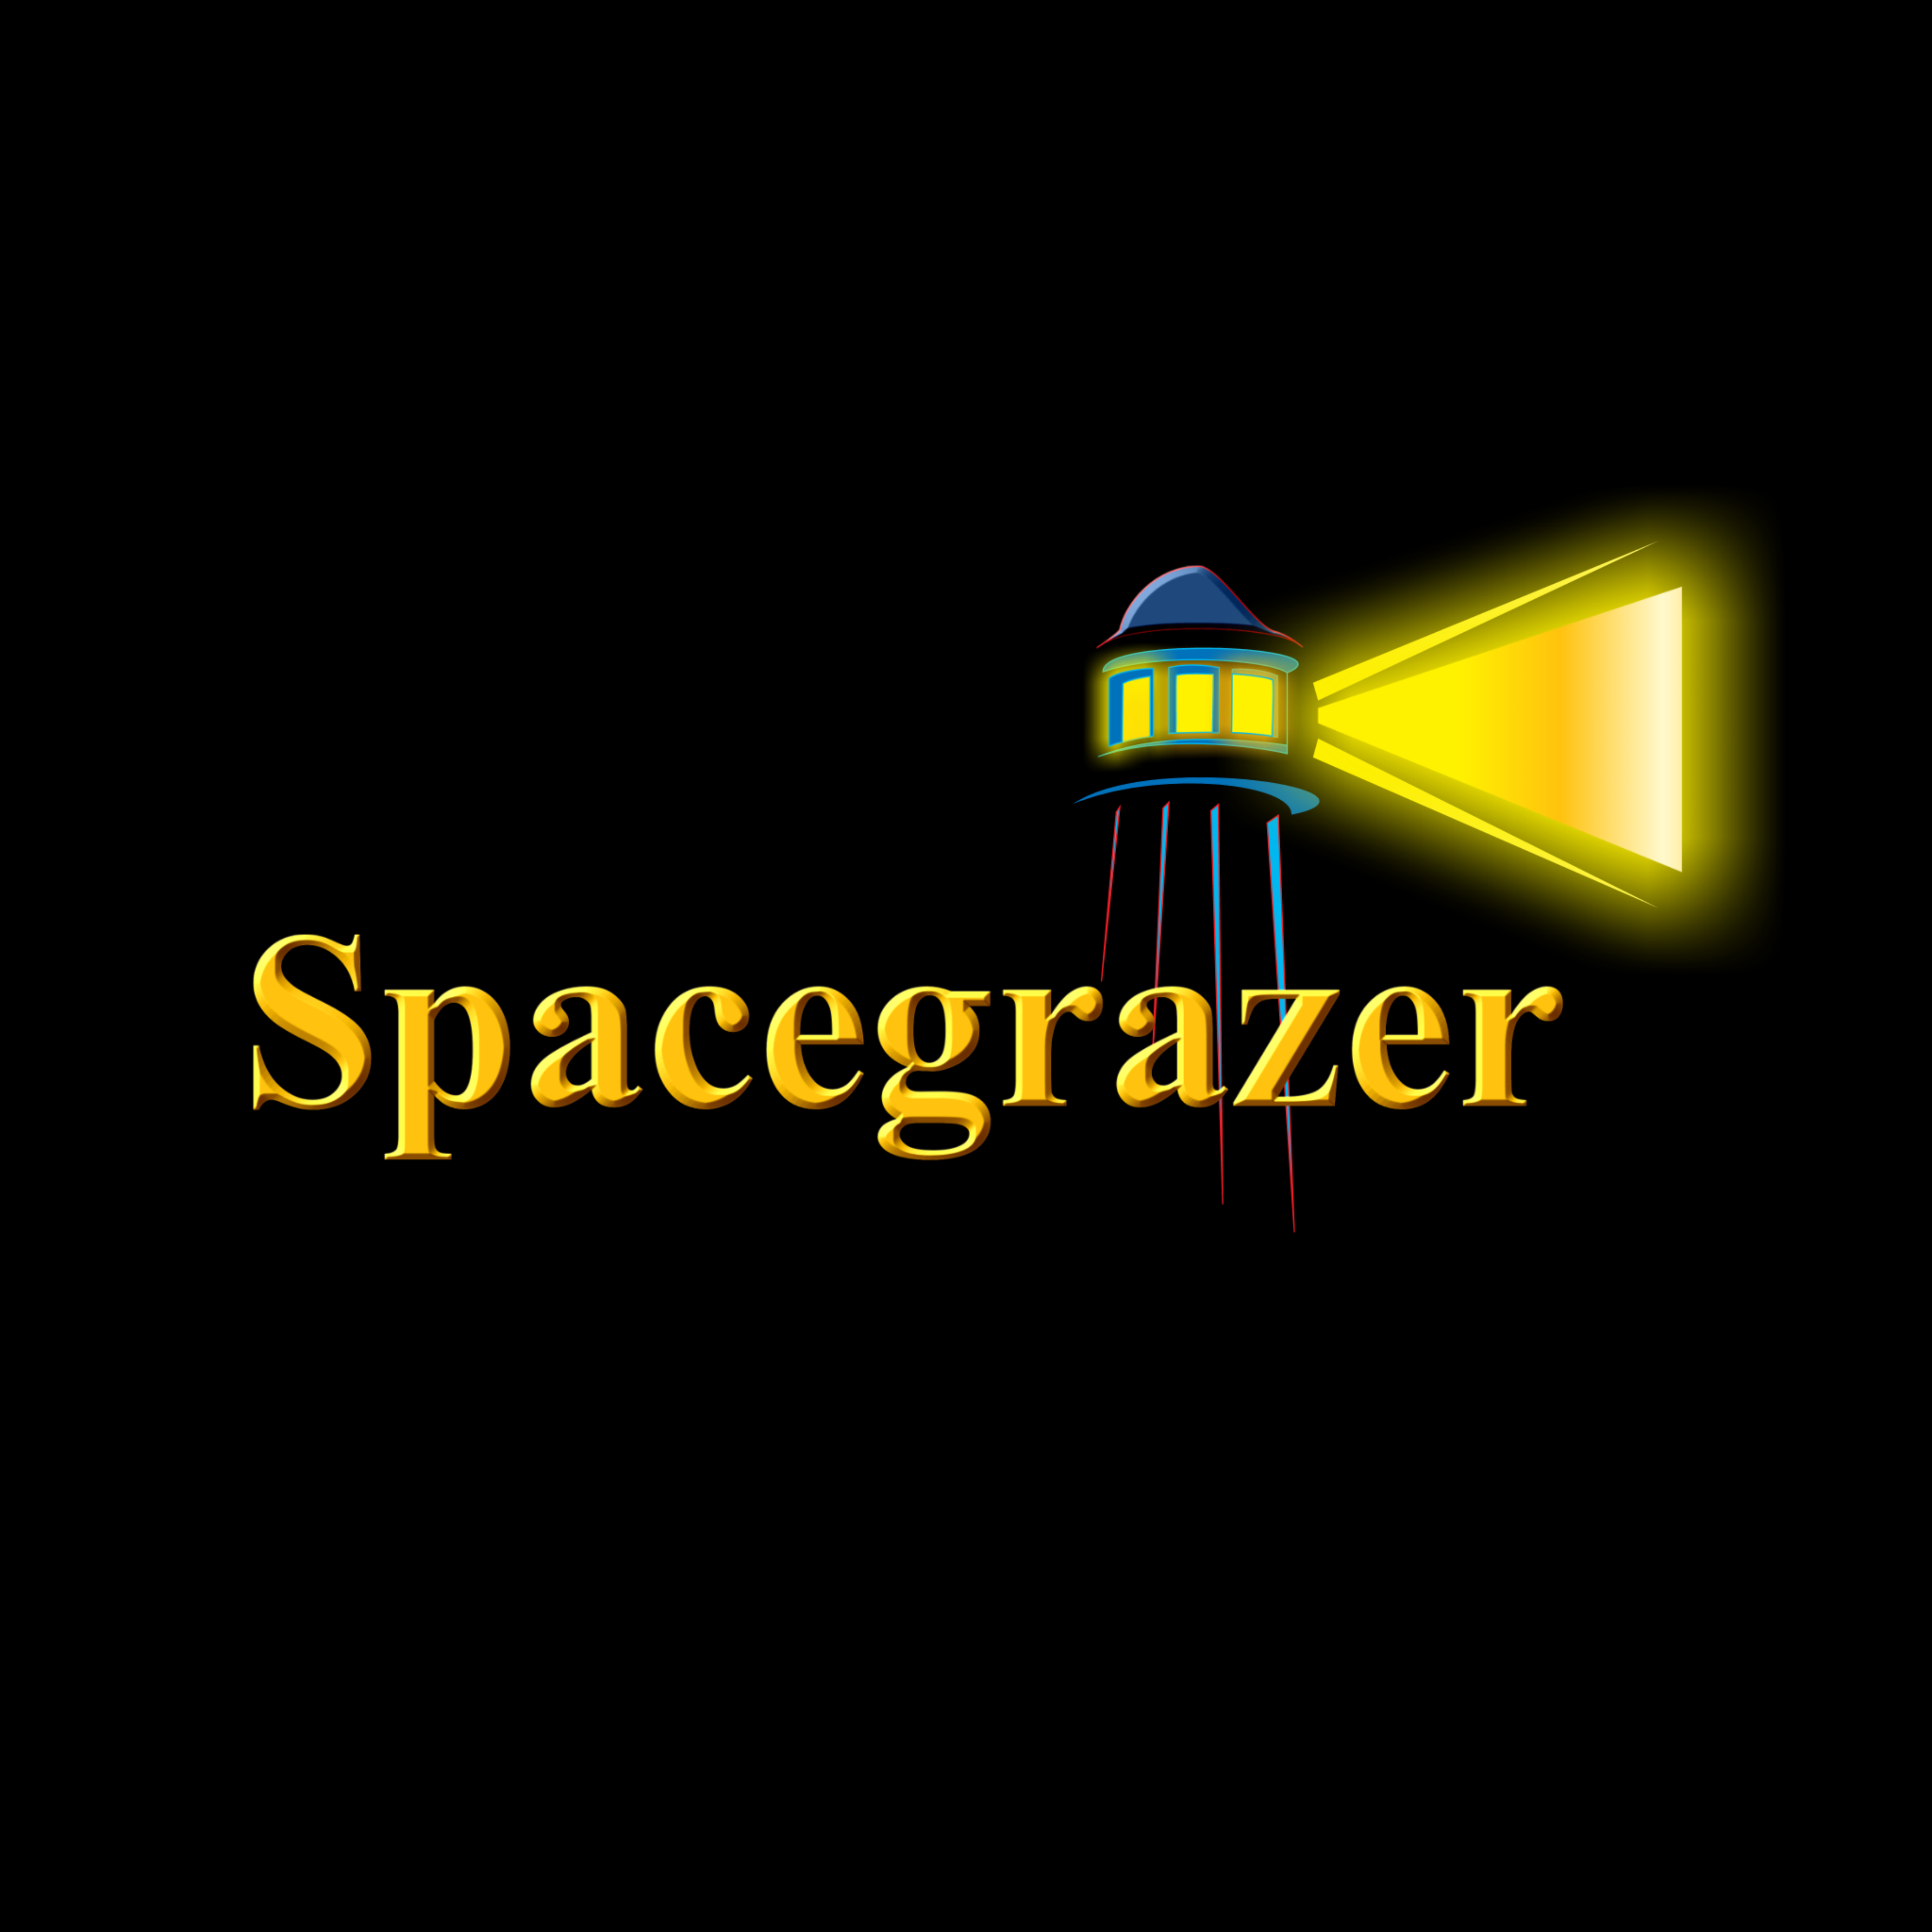 Logo Design by Steven Fitzpatrick - Entry No. 11 in the Logo Design Contest Fun Logo Design for Spacegrazer.